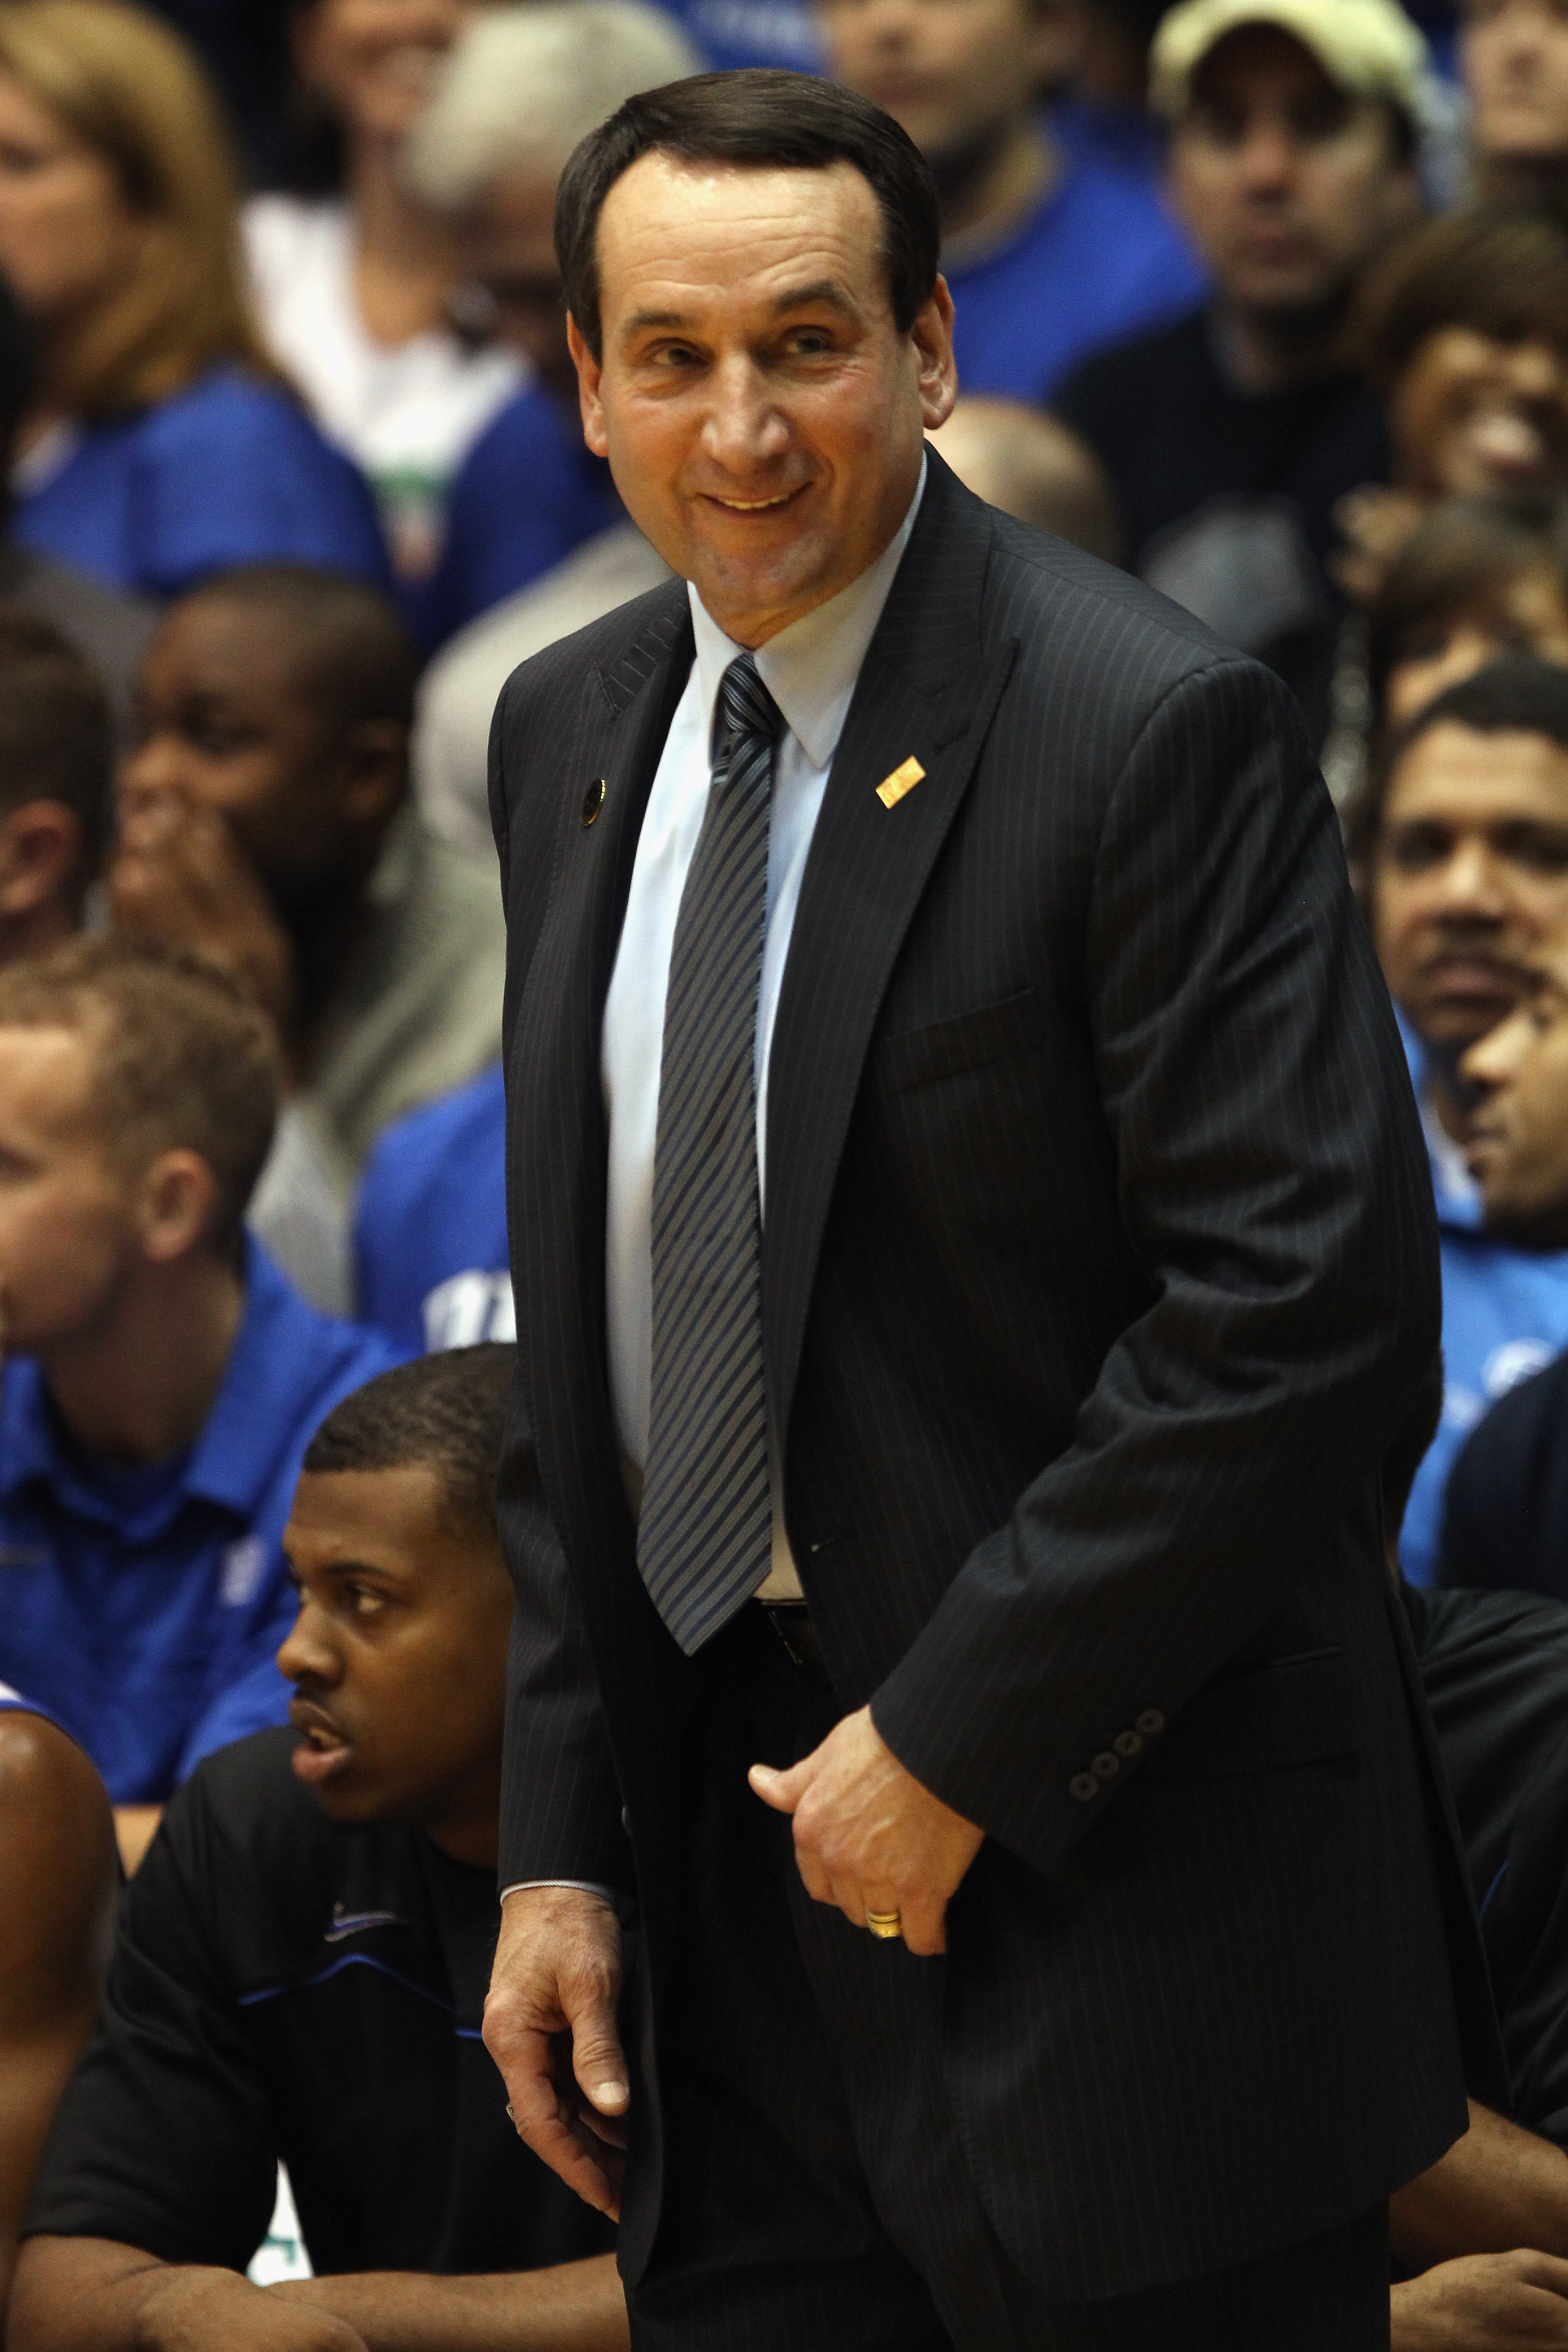 DURHAM, NC - DECEMBER 01:  Head coach Mike Krzyzewski of the Duke Blue Devils watches on against the Michigan State Spartans during their game at Cameron Indoor Stadium on December 1, 2010 in Durham, North Carolina.  (Photo by Streeter Lecka/Getty Images)